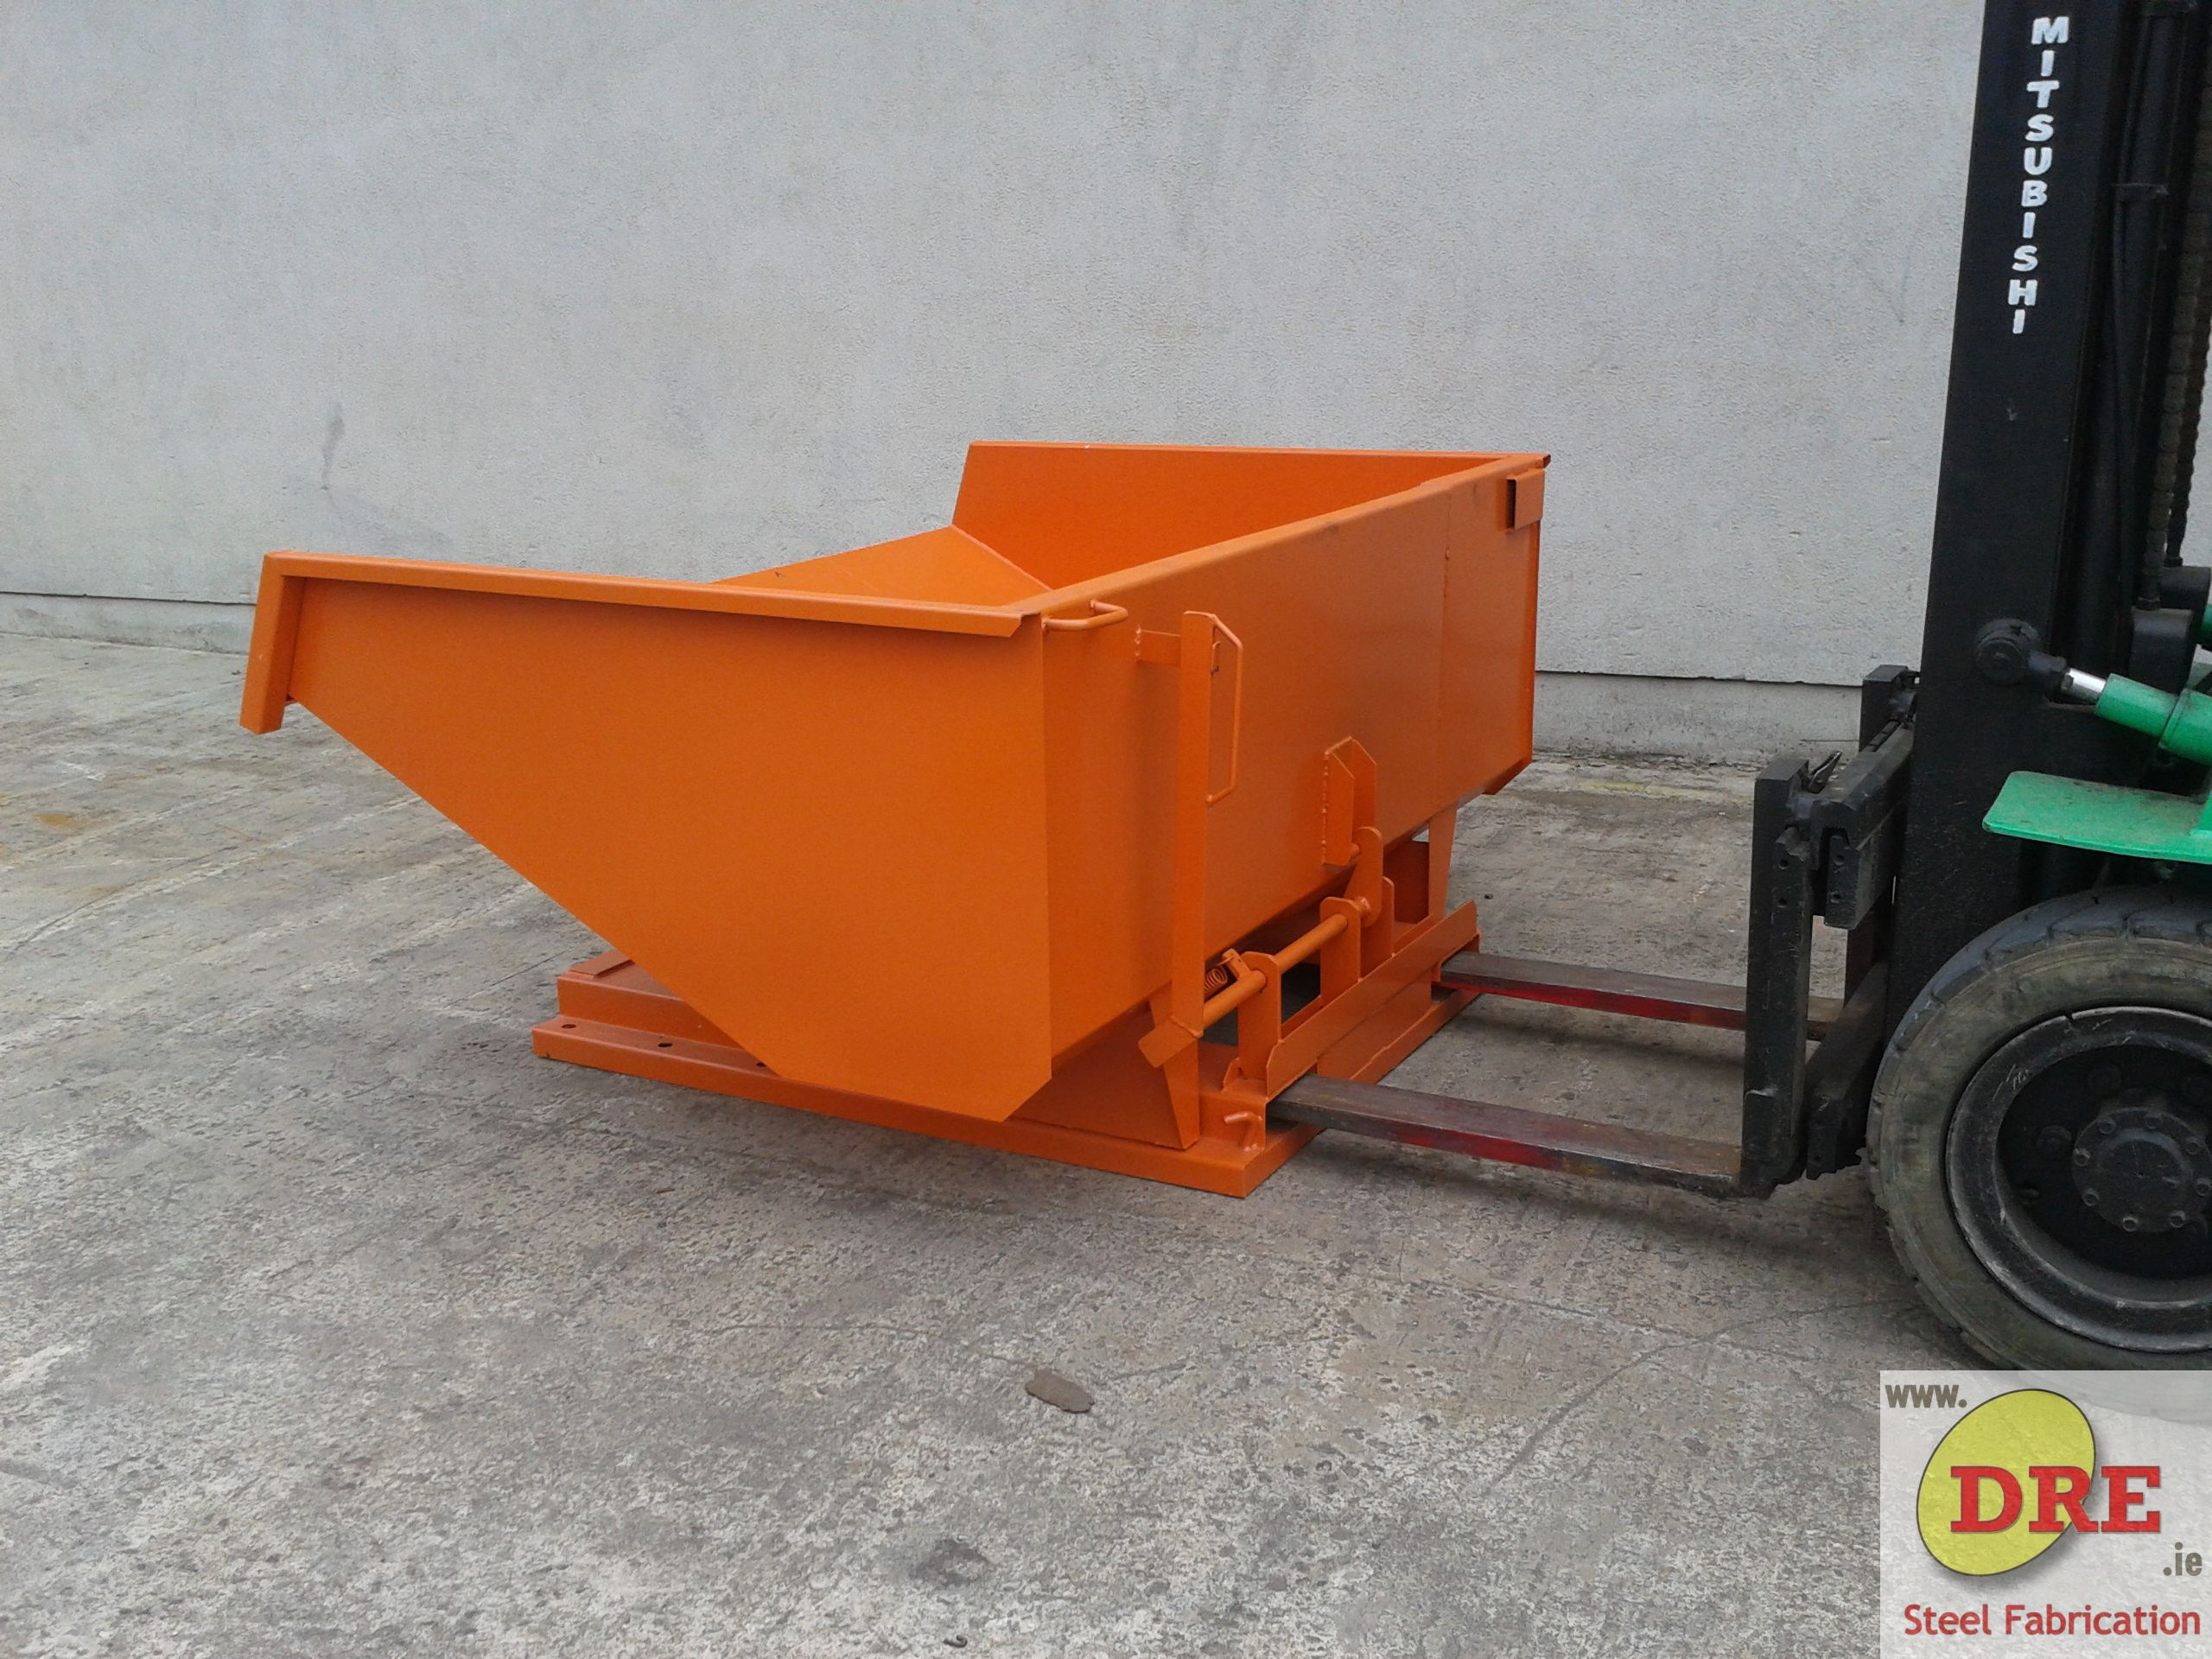 Forklift Tipping Skip hire dre bunclody dre.ie ireland